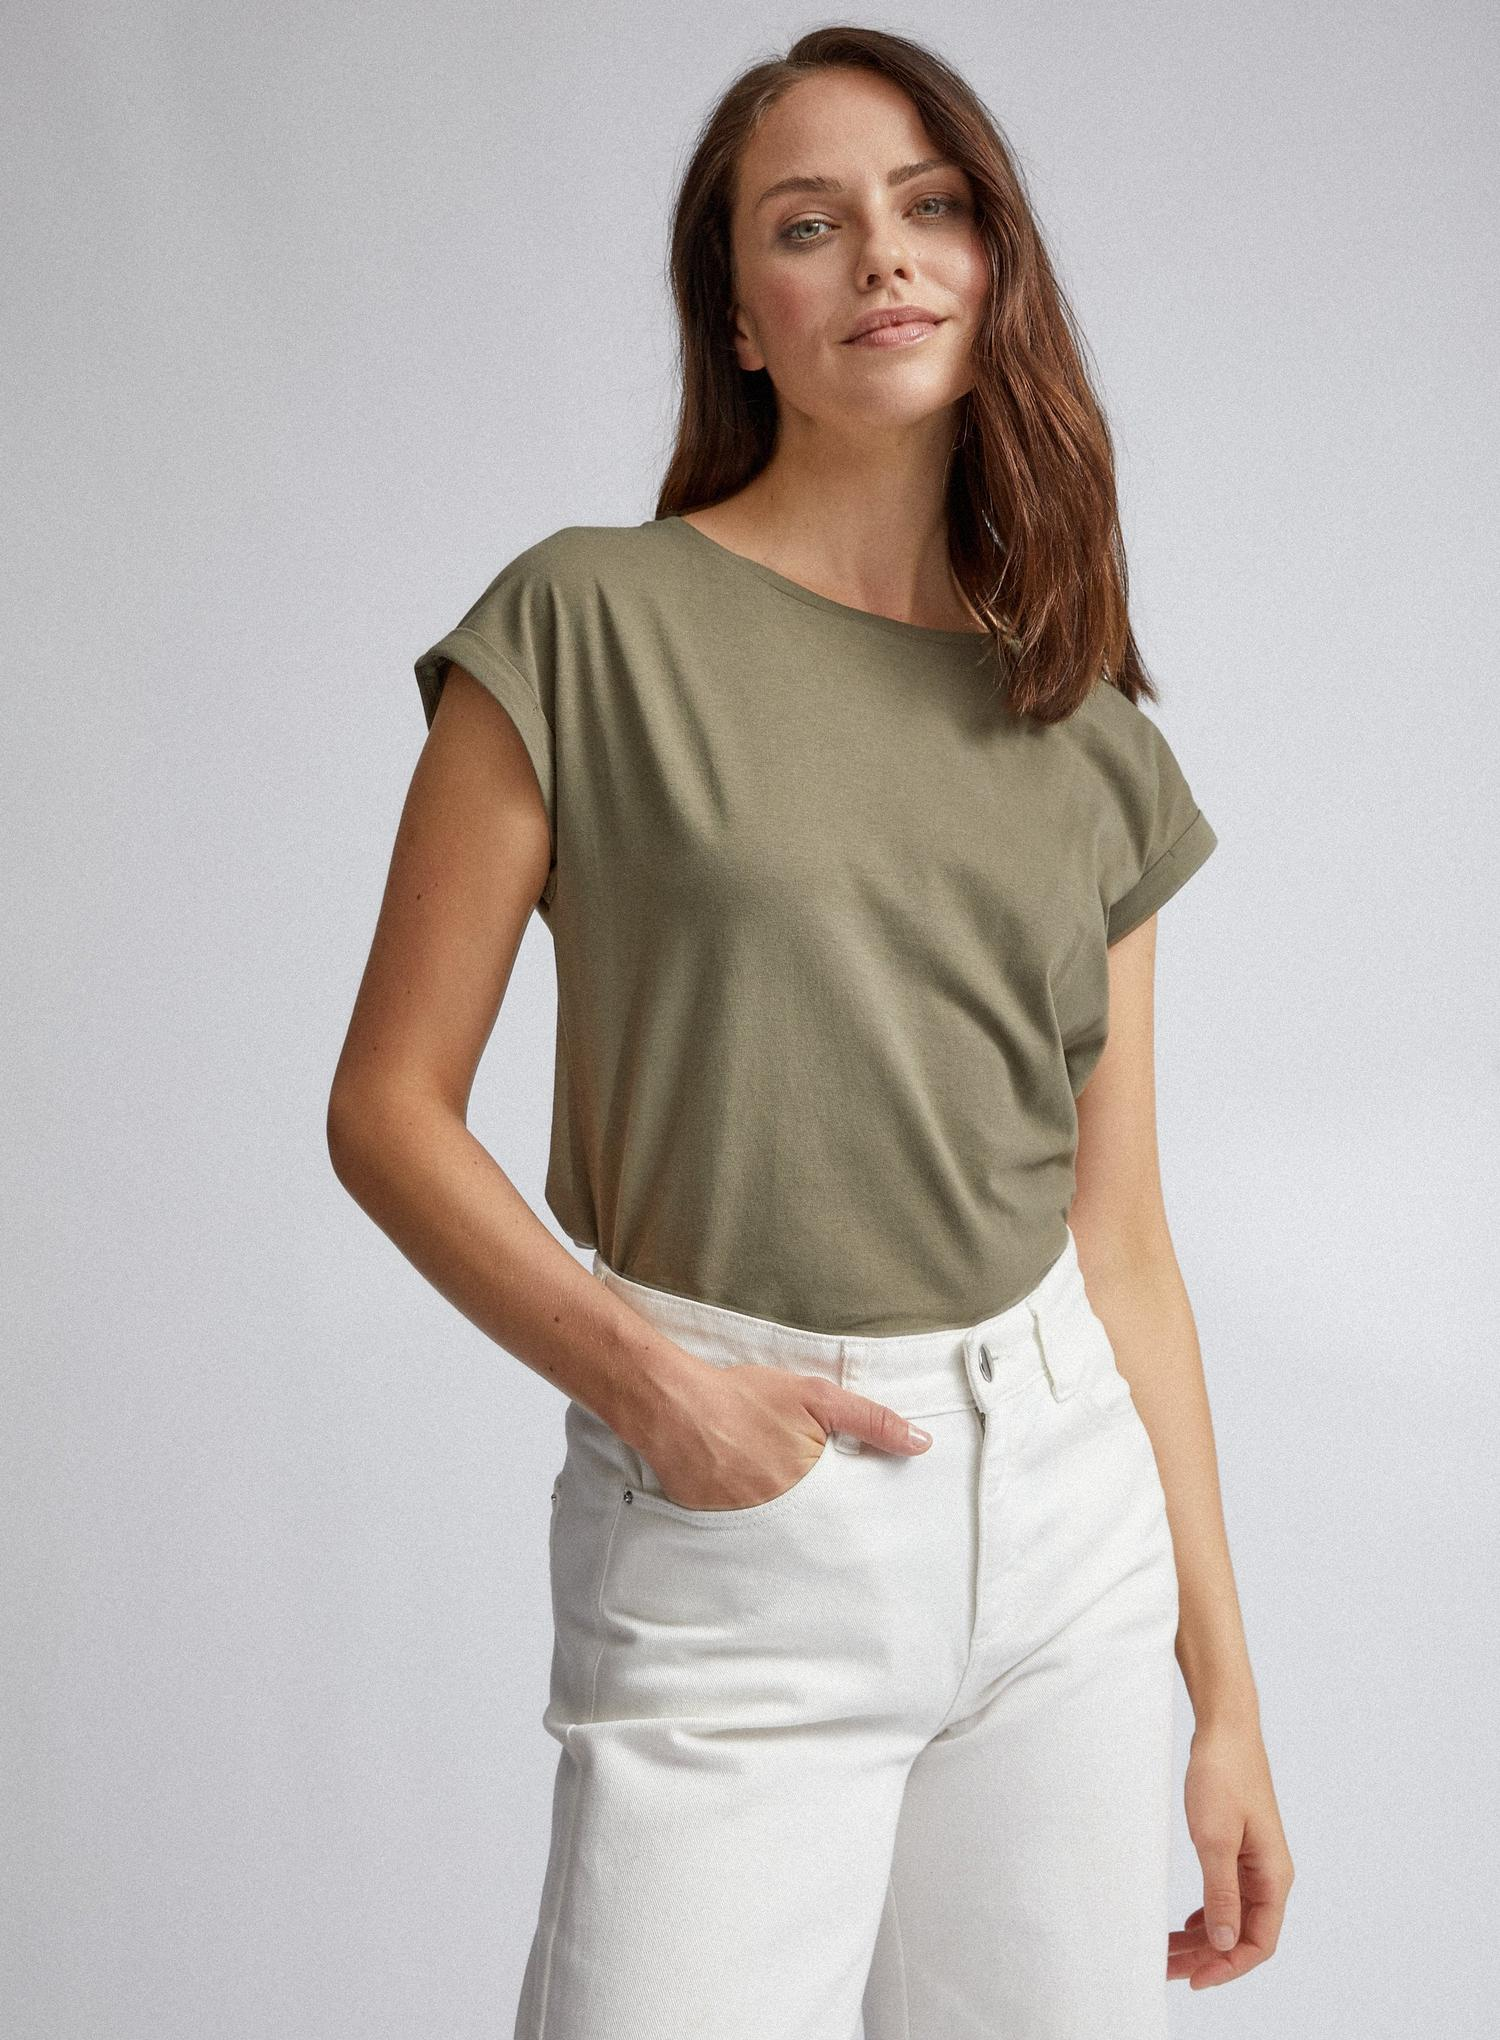 130 Khaki Organic Cotton Roll Sleeve T-Shirt image number 1